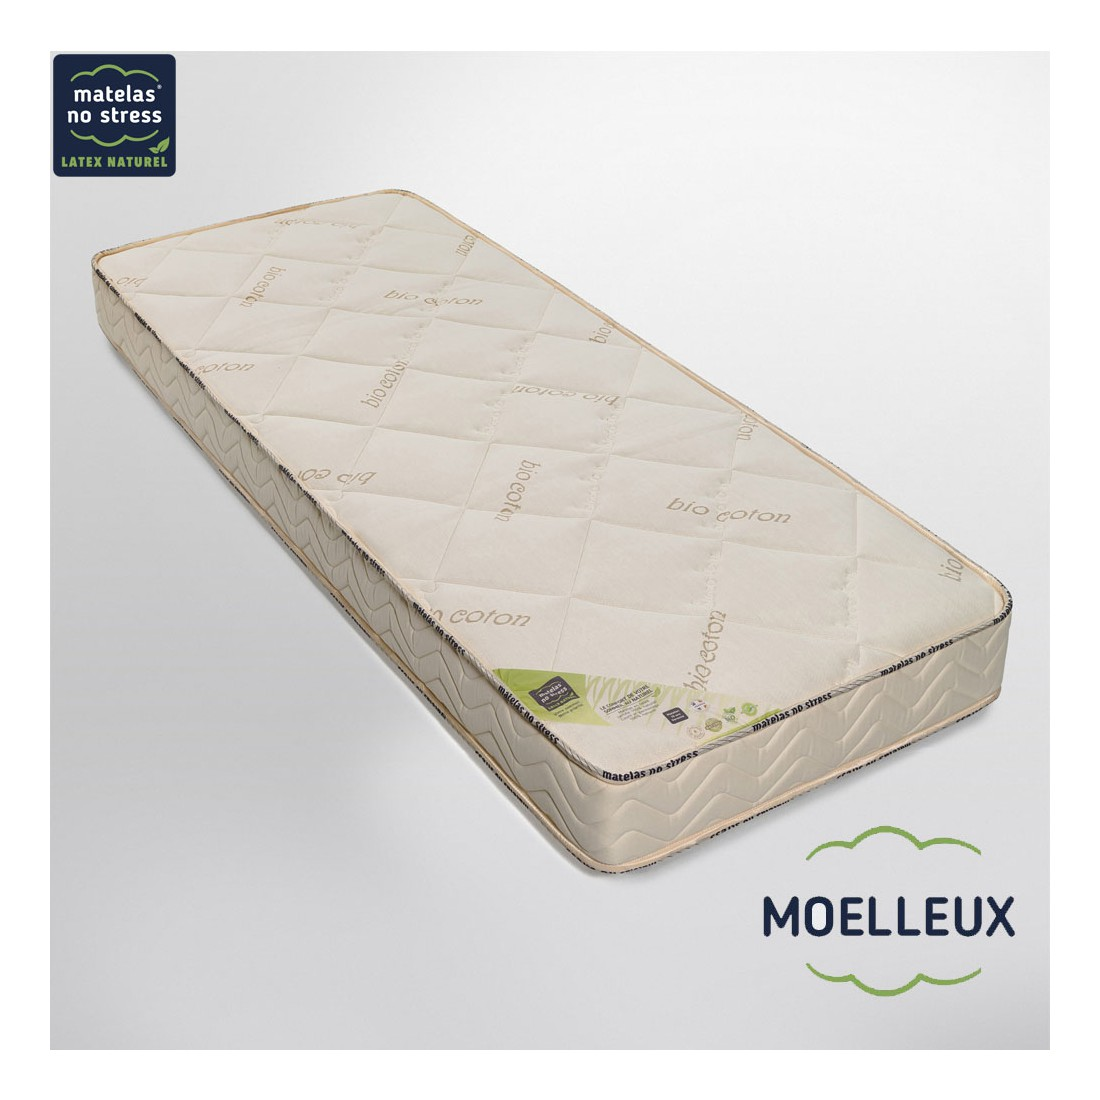 matelas latex naturel 160x200 matelas lit electrique 160x200 matelaslatex morgong va matelas. Black Bedroom Furniture Sets. Home Design Ideas